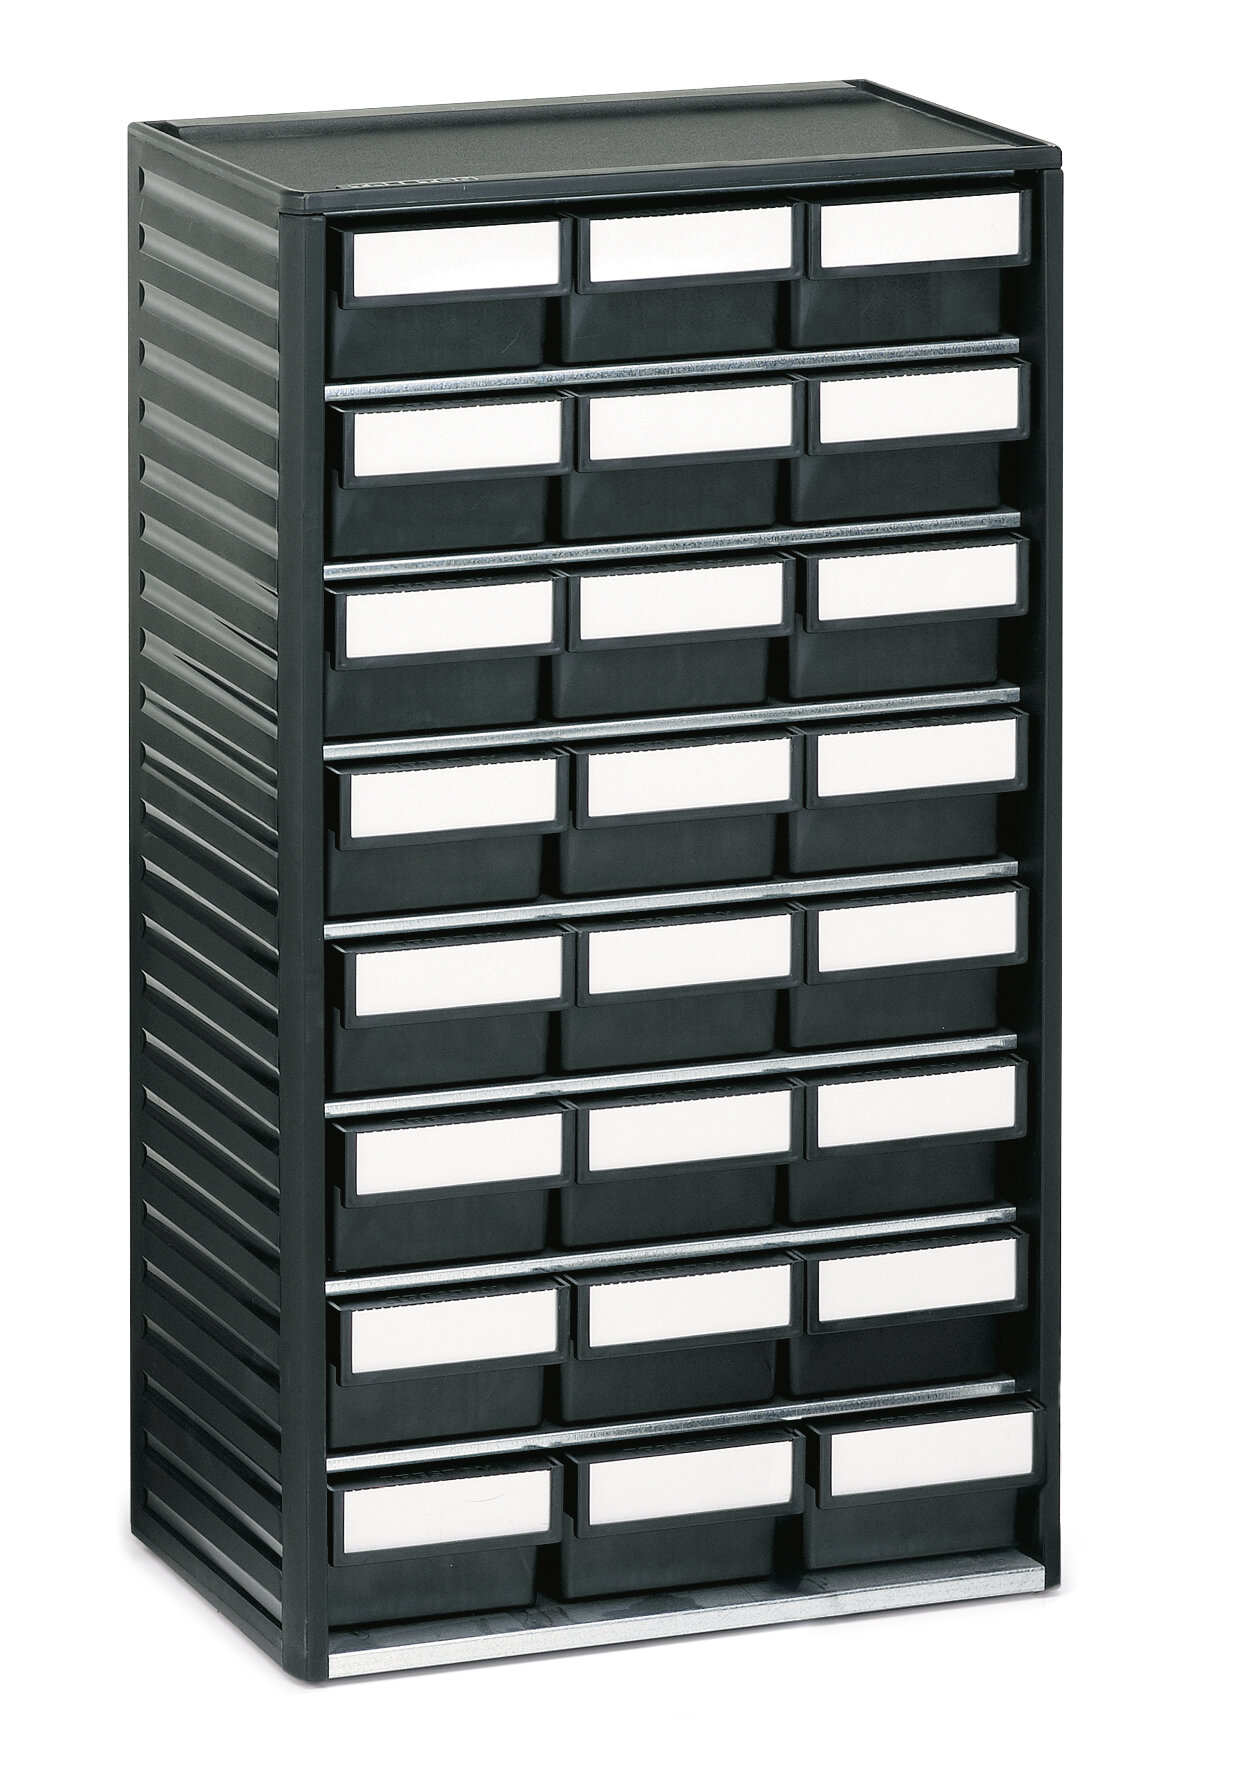 Esd Small Parts Cabinet W 24 Drawers